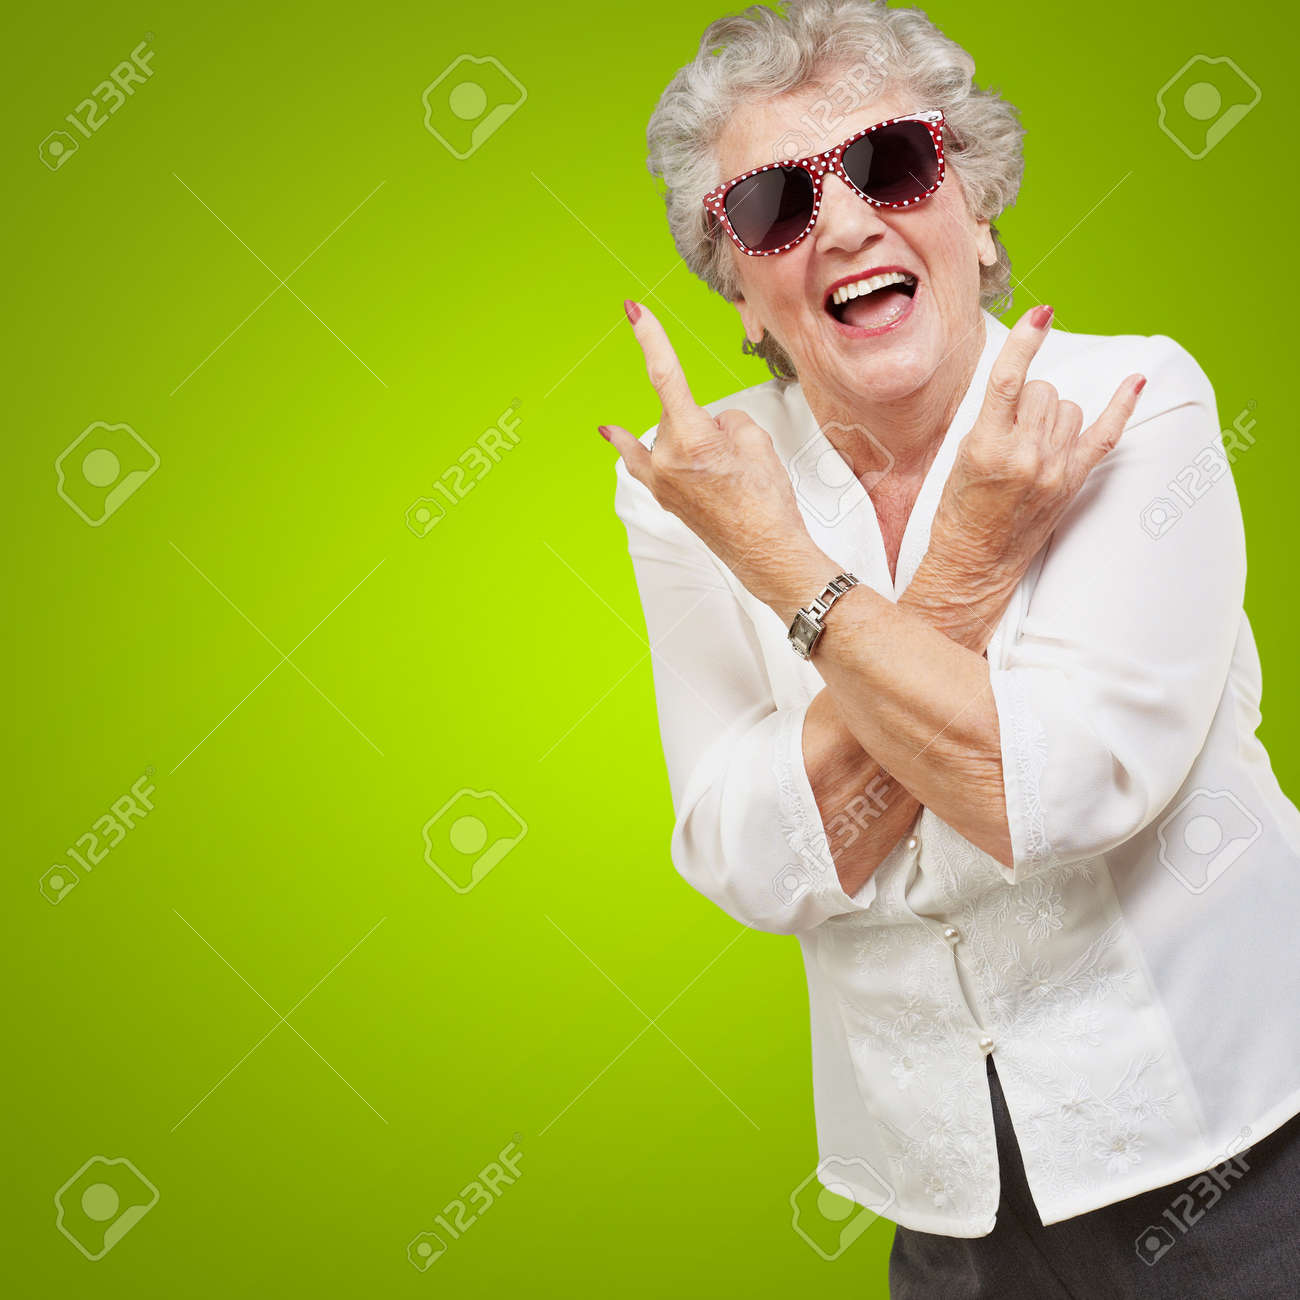 Senior woman wearing sunglasses doing funky action isolated on green background Stock Photo - 16039340